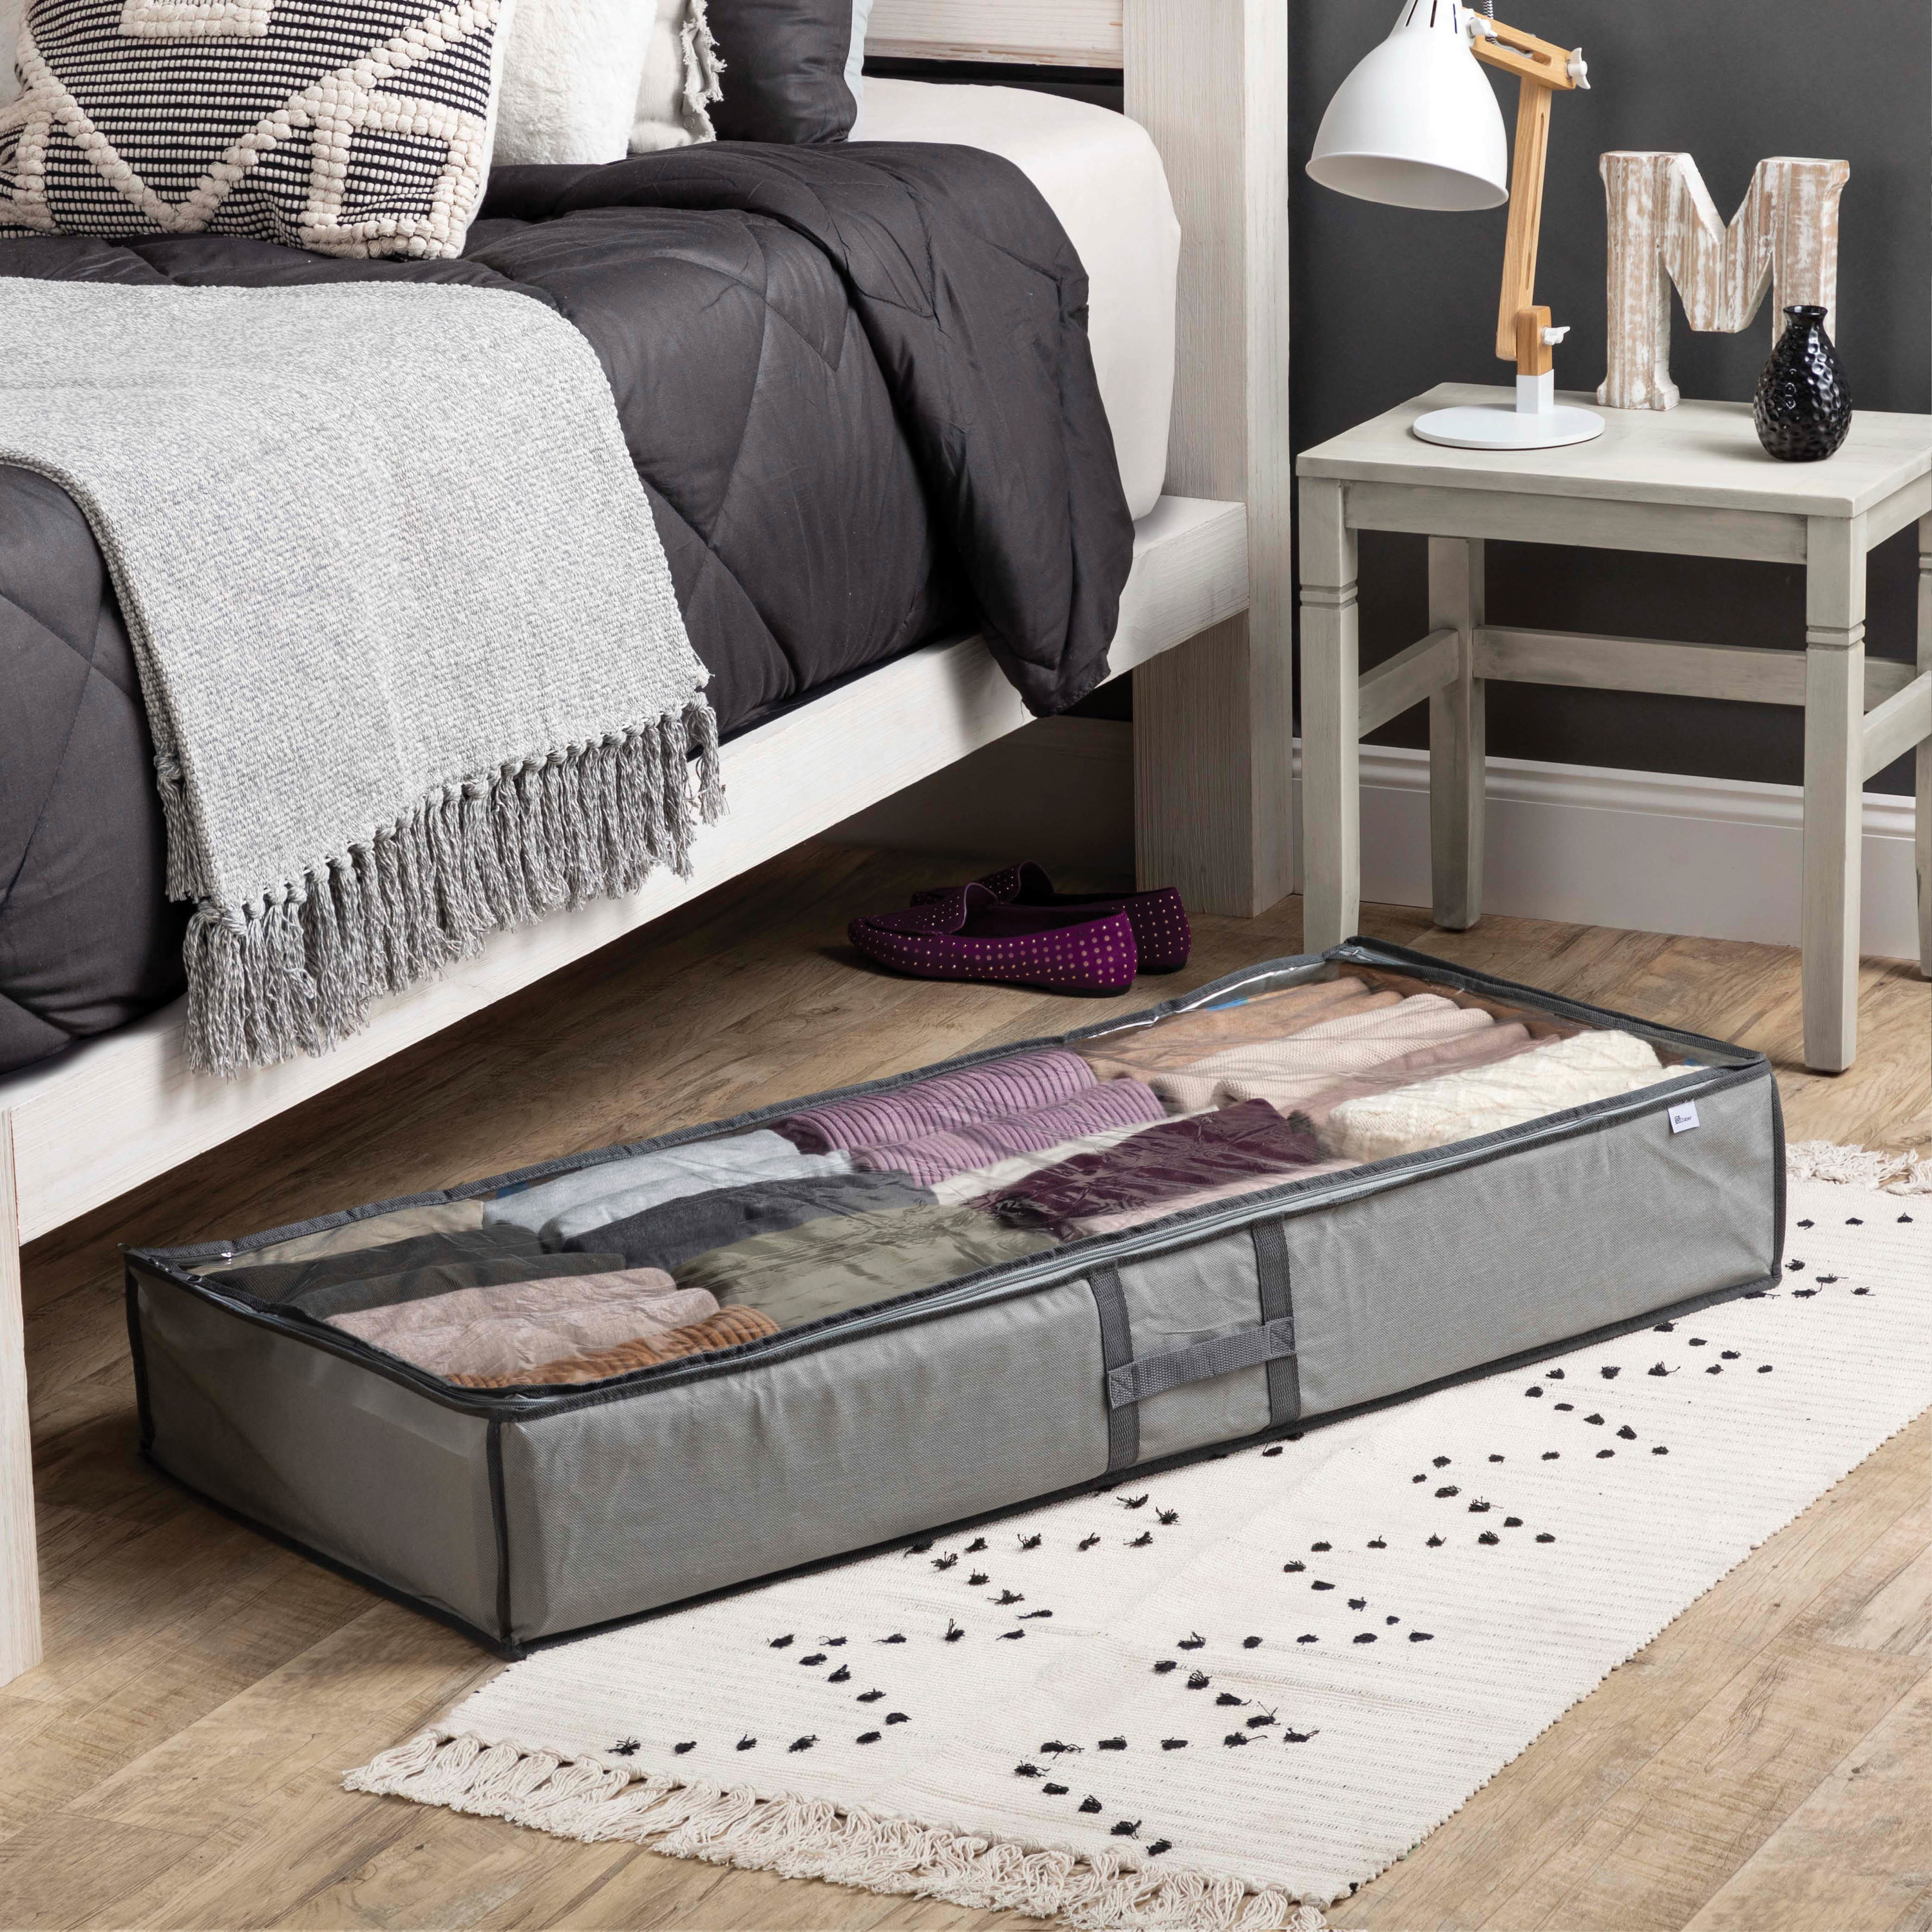 A gray fabric bag to store under the bed